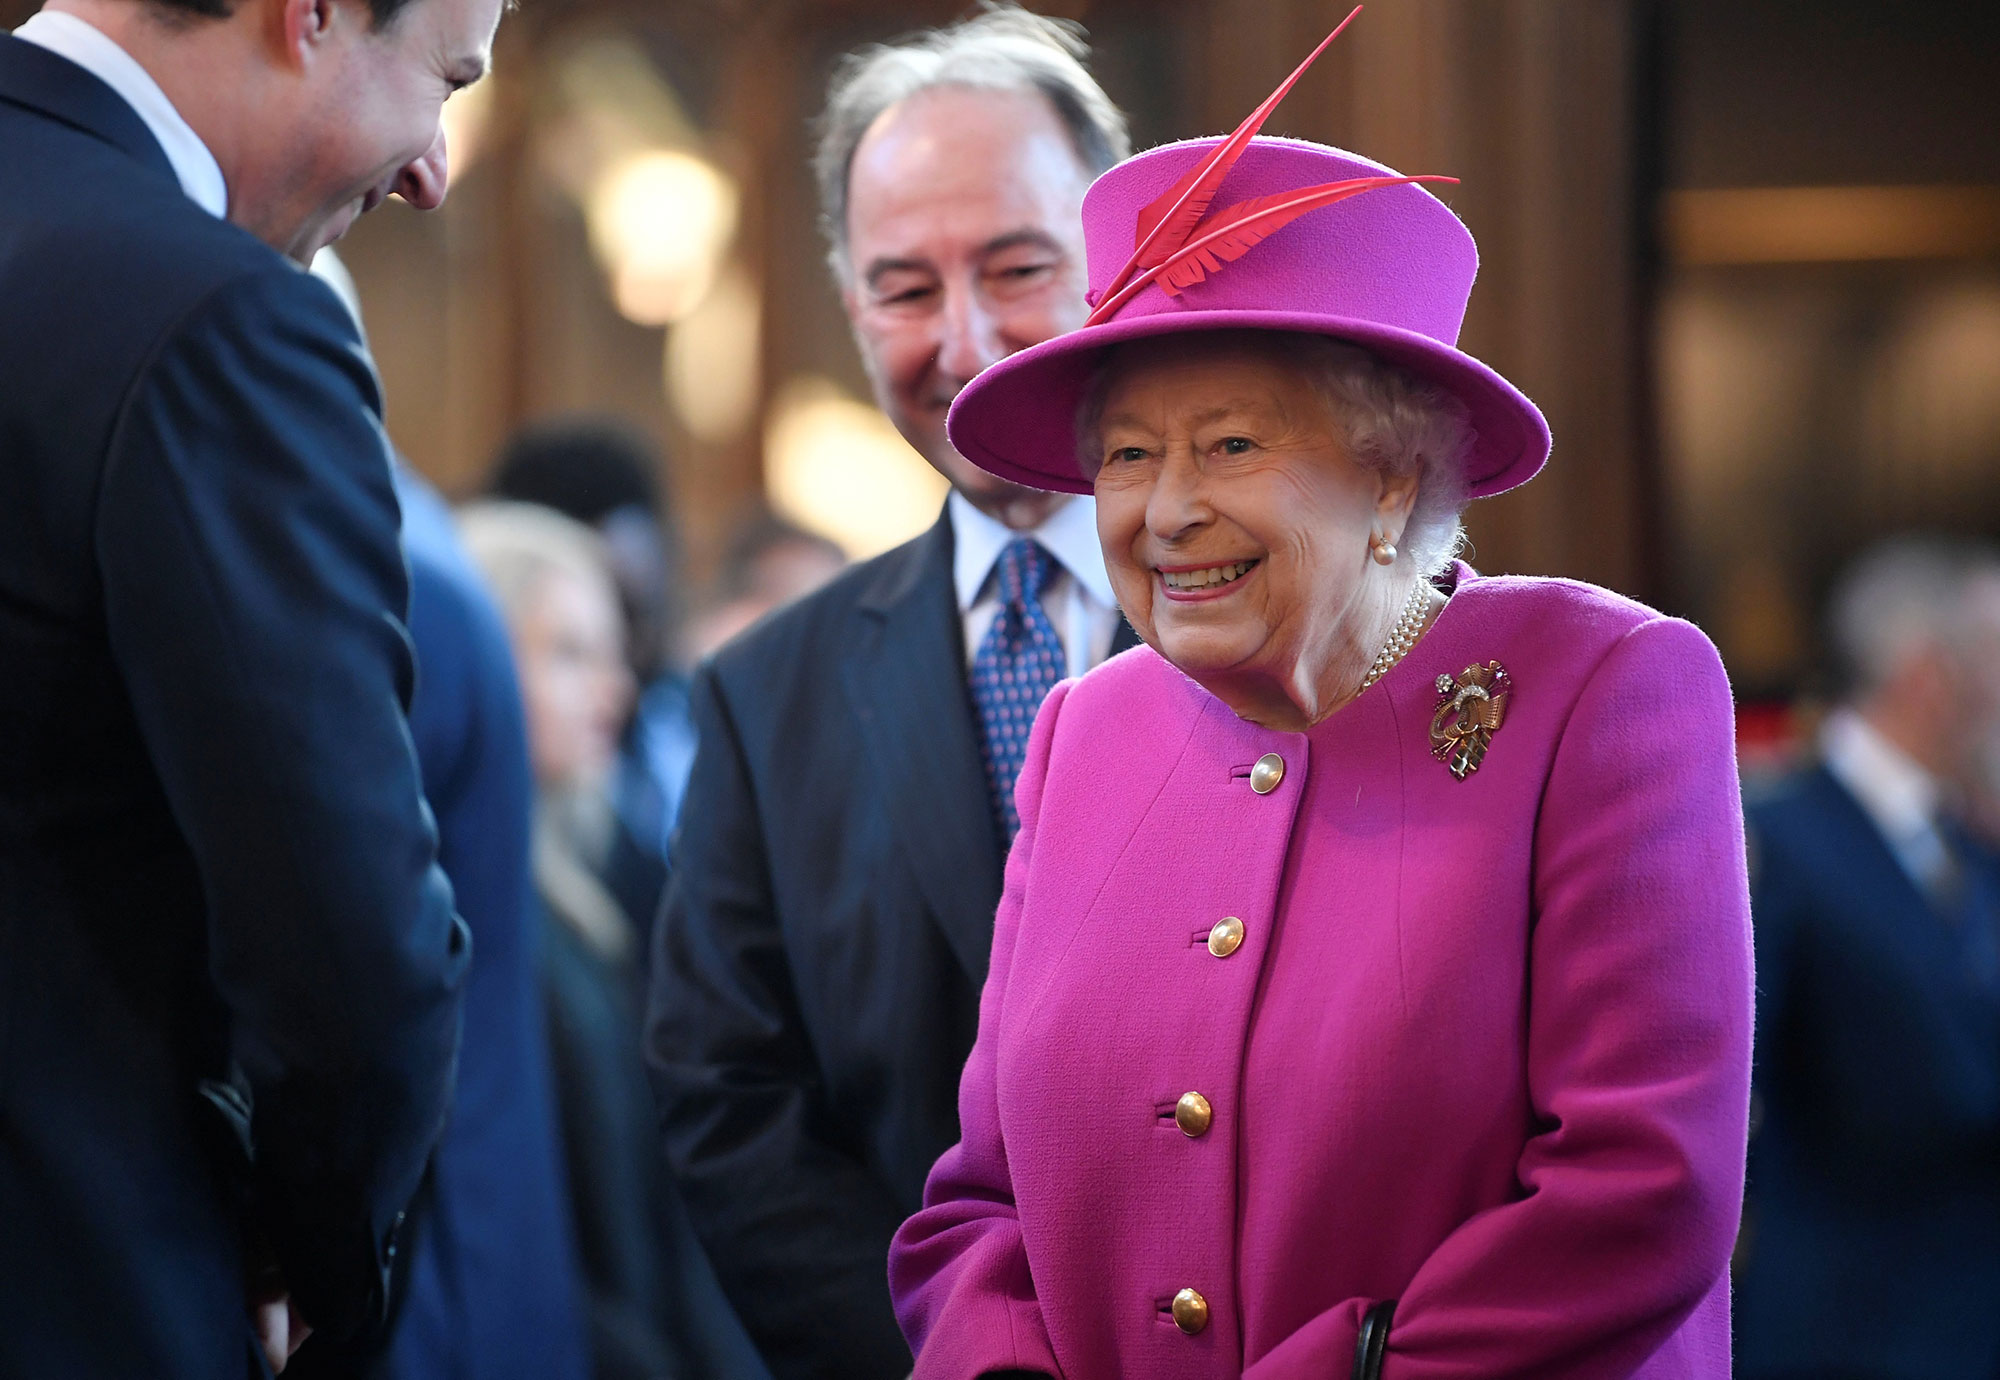 The Queen And The Duke Of York Visit The Honourable Society Of Lincoln's Inn